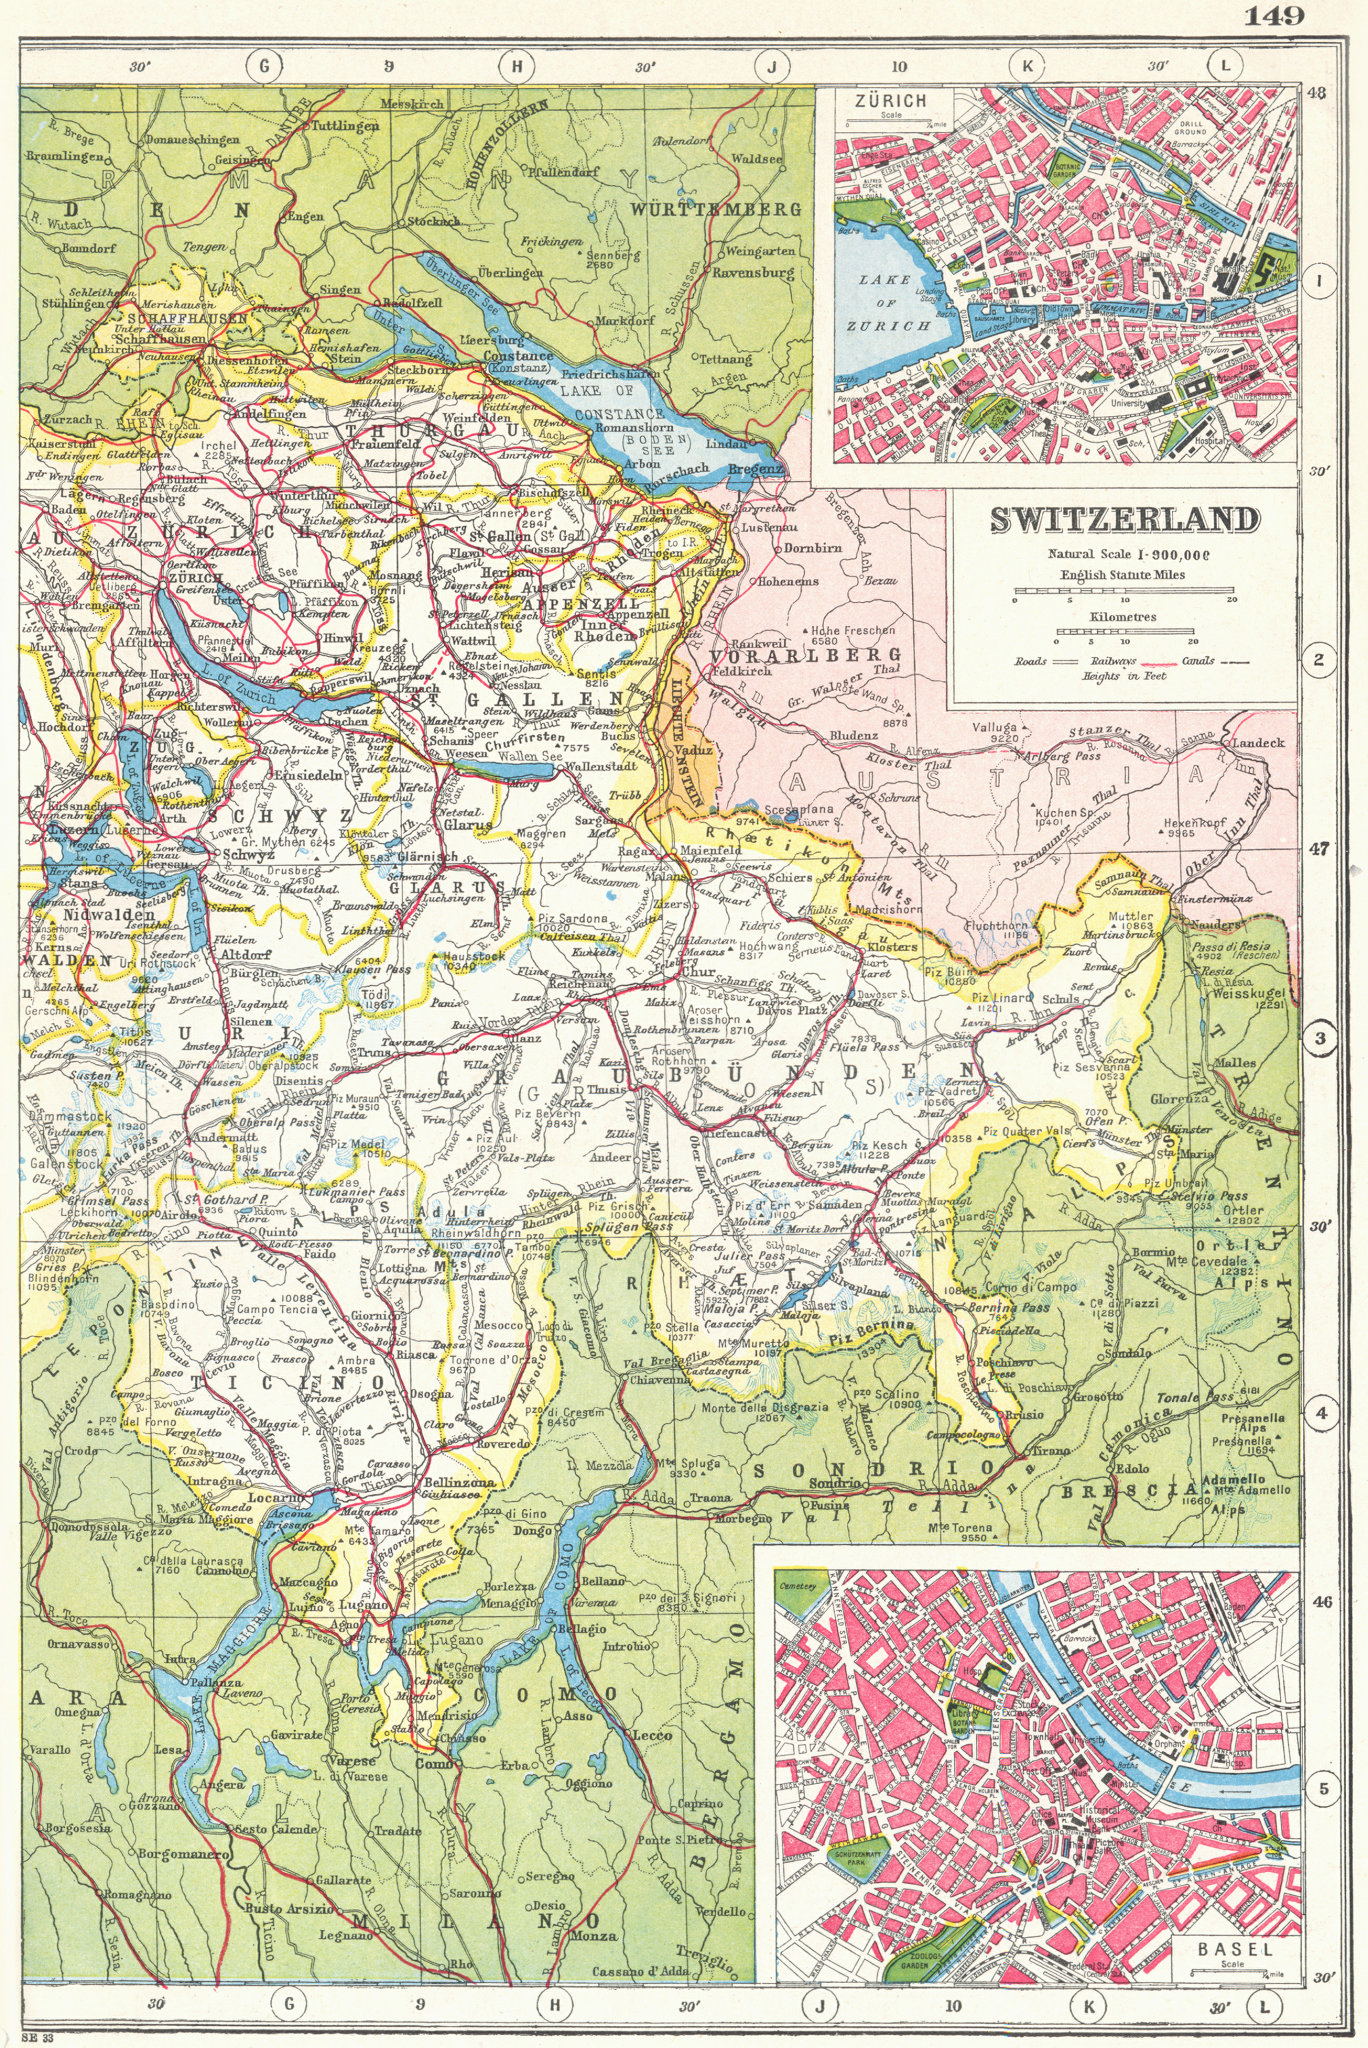 Associate Product SWITZERLAND EAST. inset plans of Zurich & Basel Basle. HARMSWORTH 1920 old map